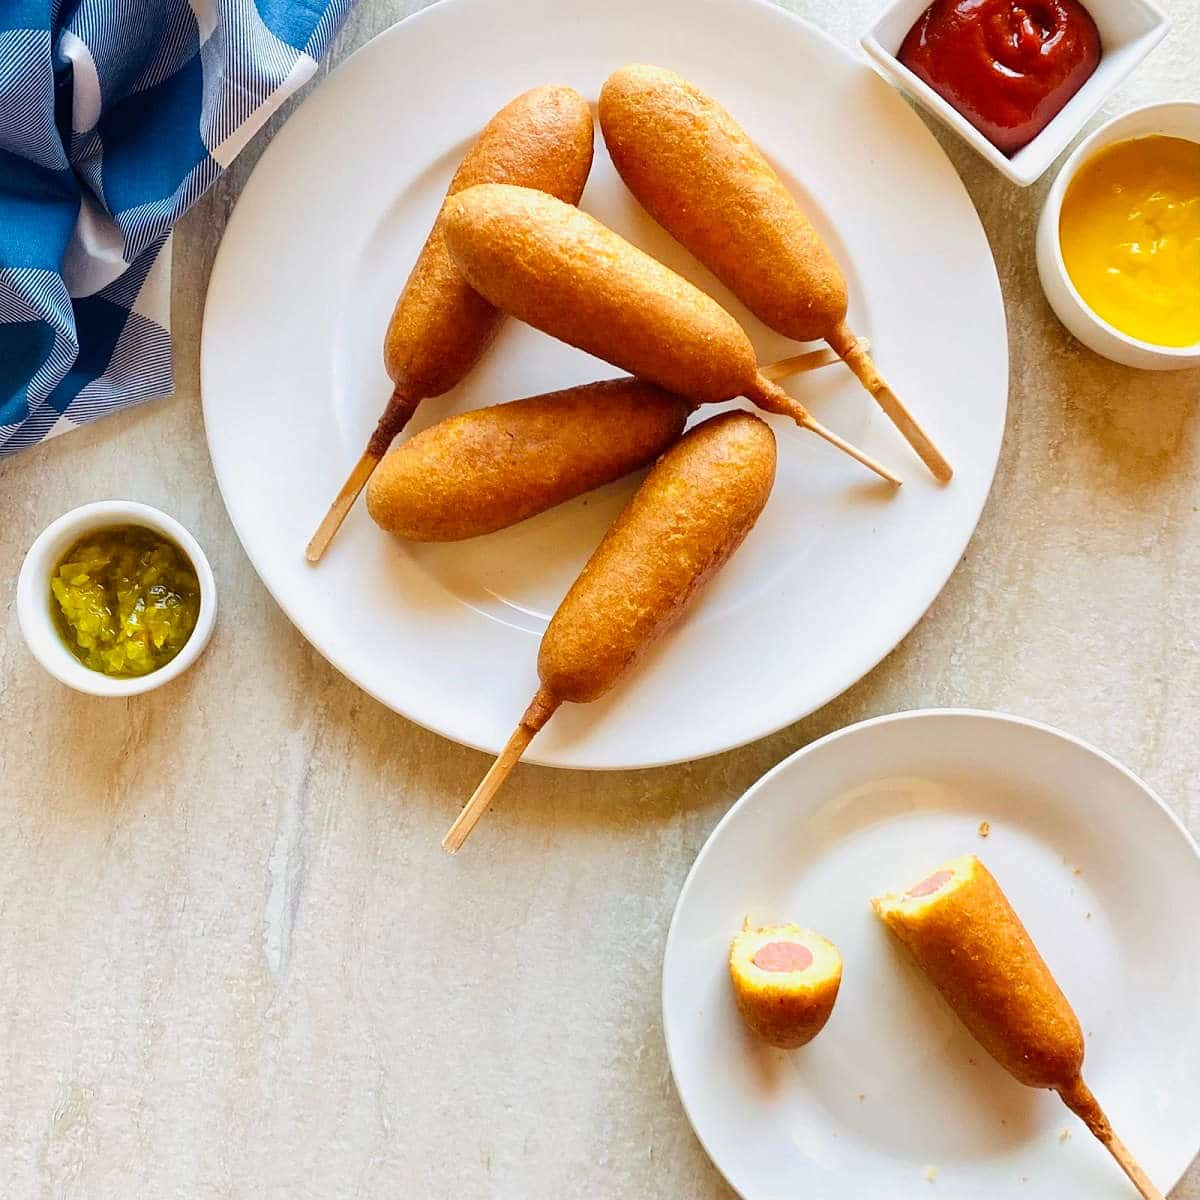 frozen air fryer corn dogs on a plate next to ketchup, mustard and relish